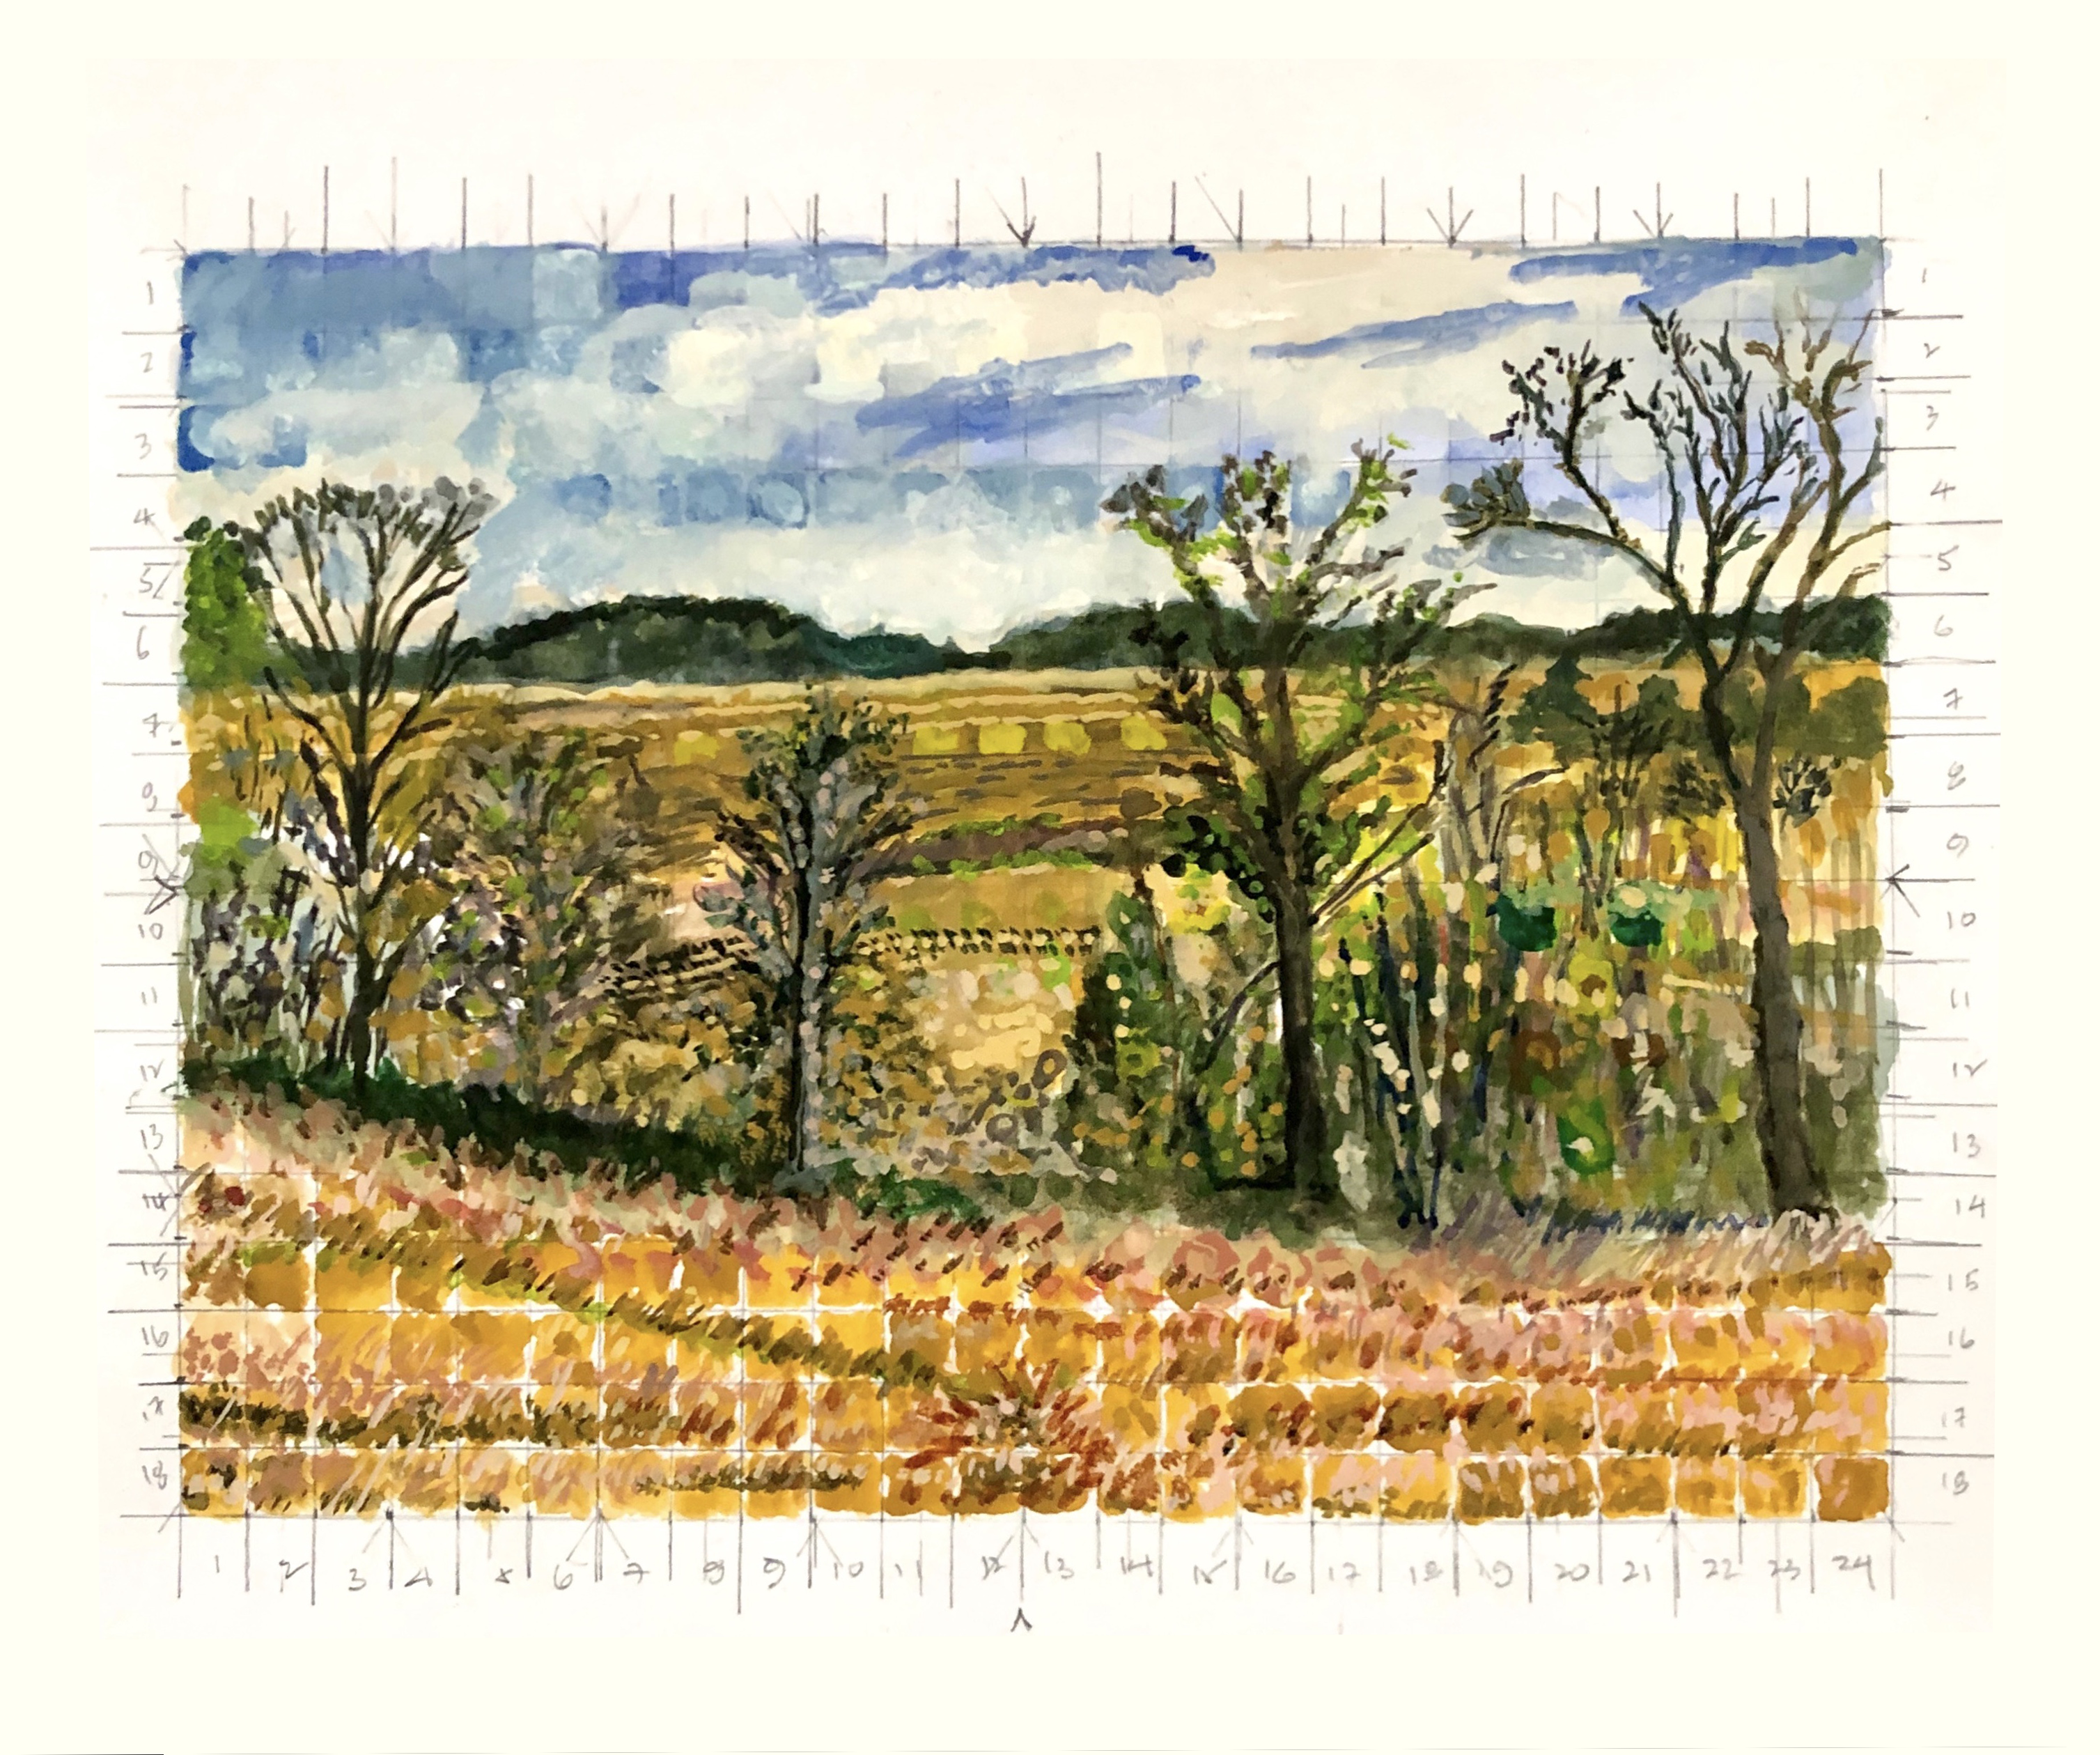 die winterreise, watercolor #3 (Hay Bales)